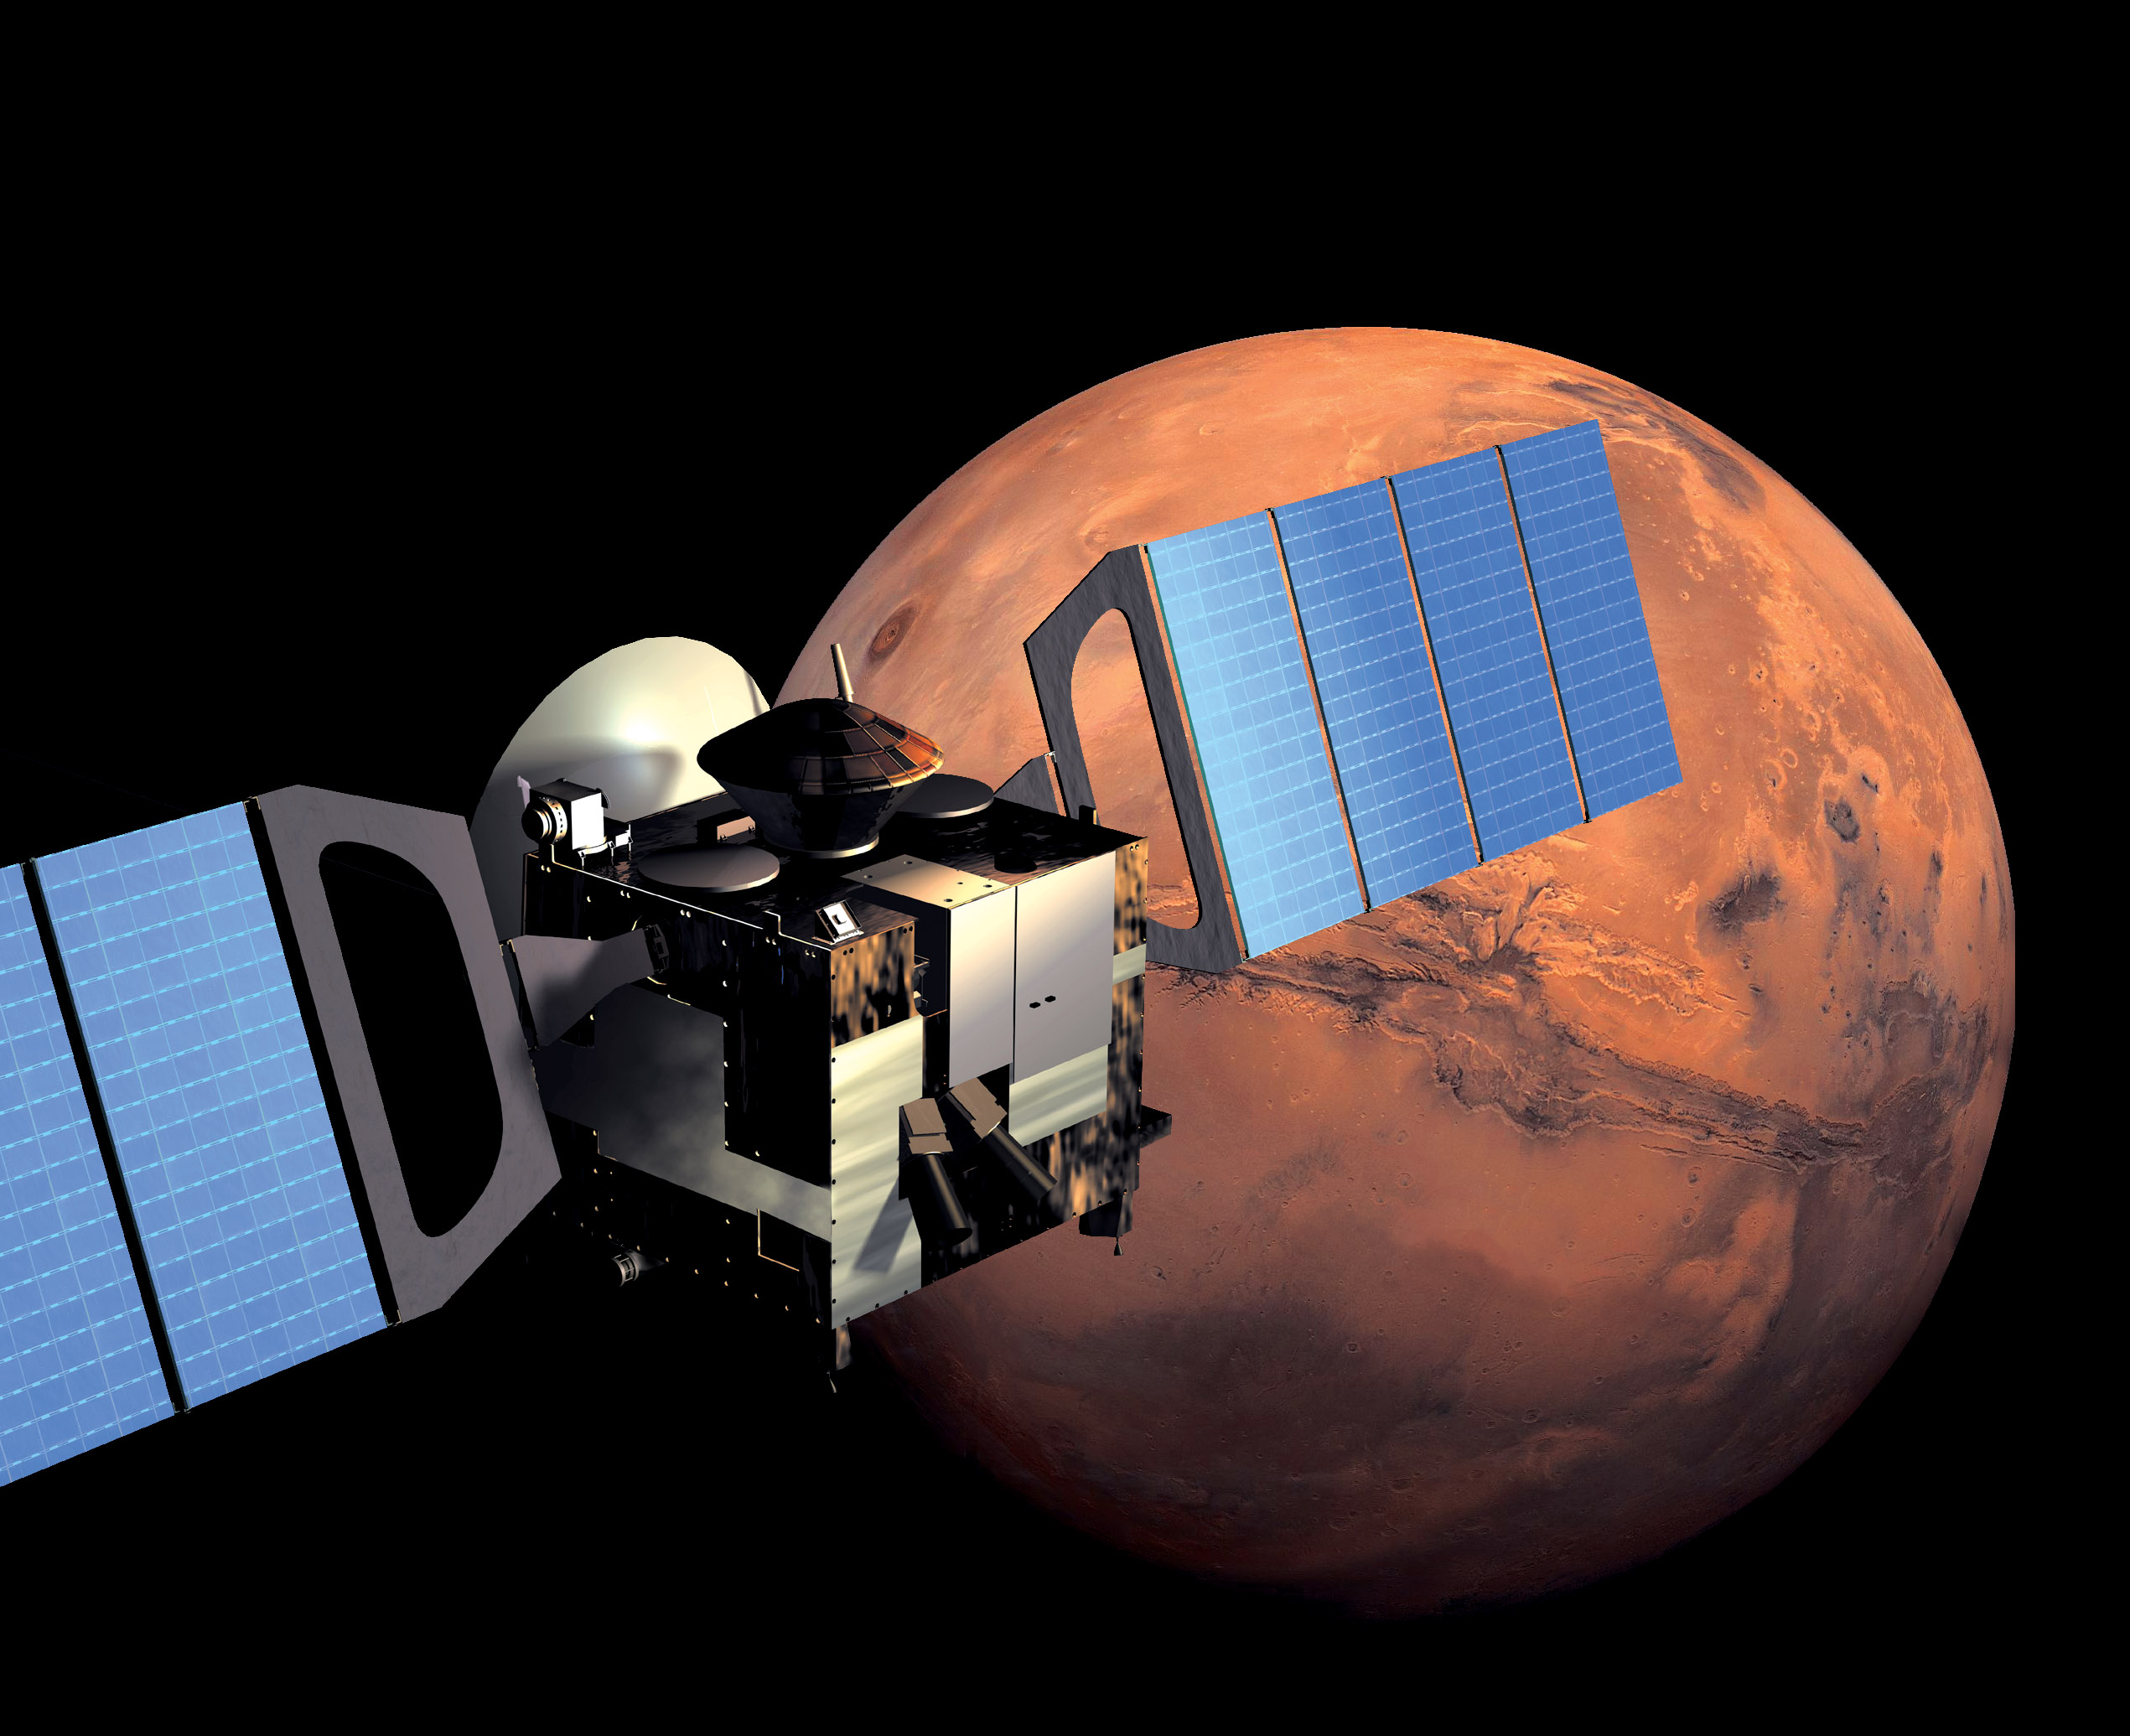 ESA Science & Technology: Mars Express in Orbit